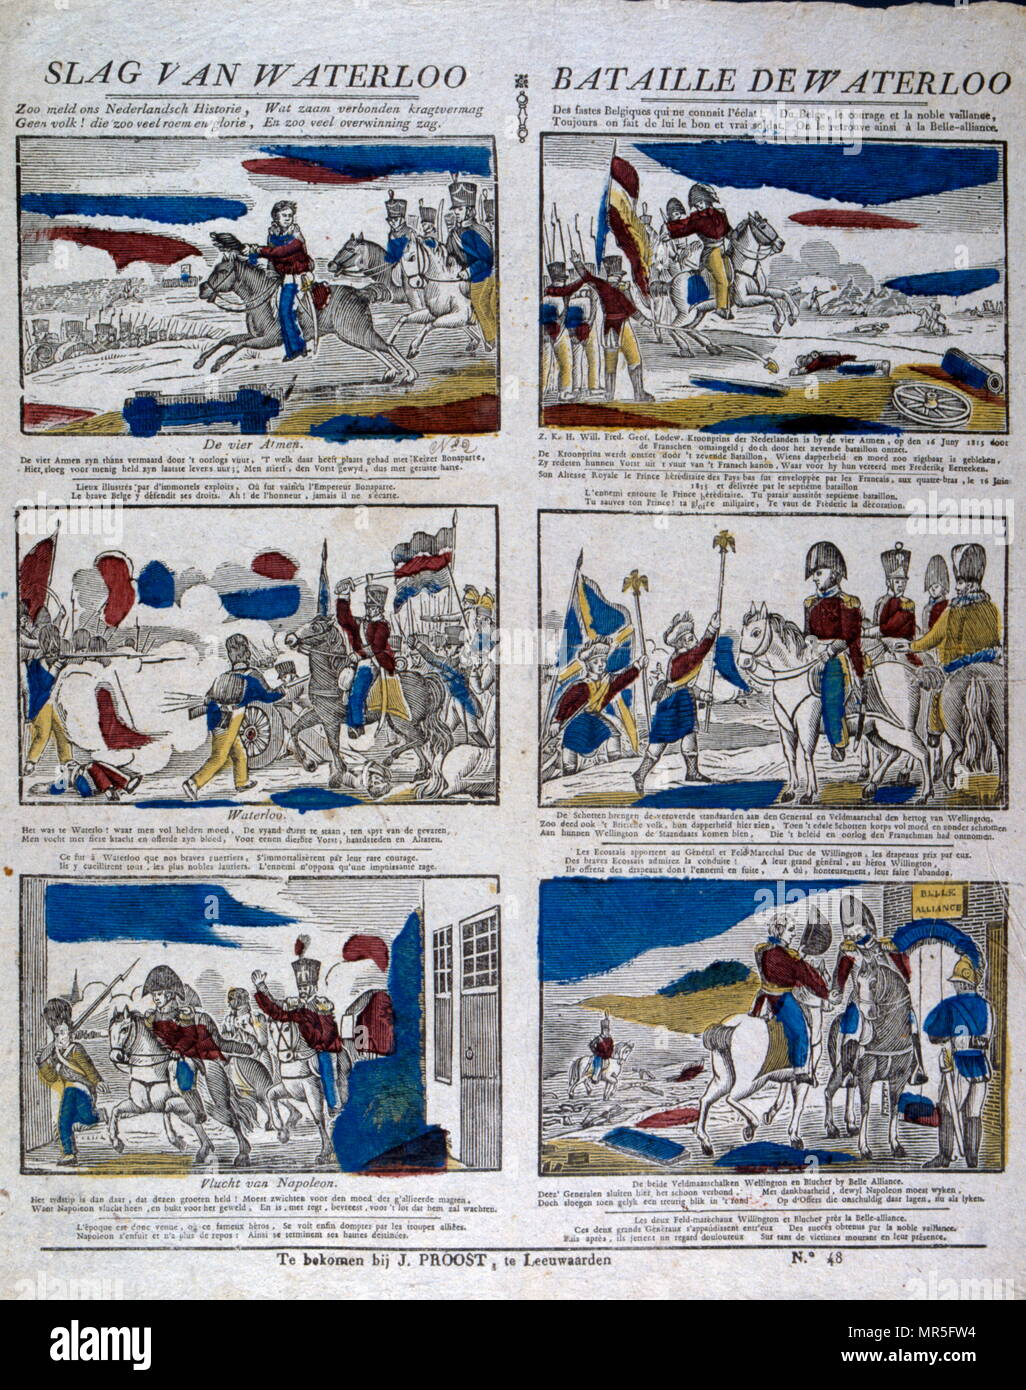 La bataille de Waterloo 1815. Langue française et flamande série d'illustrations. Photo Stock